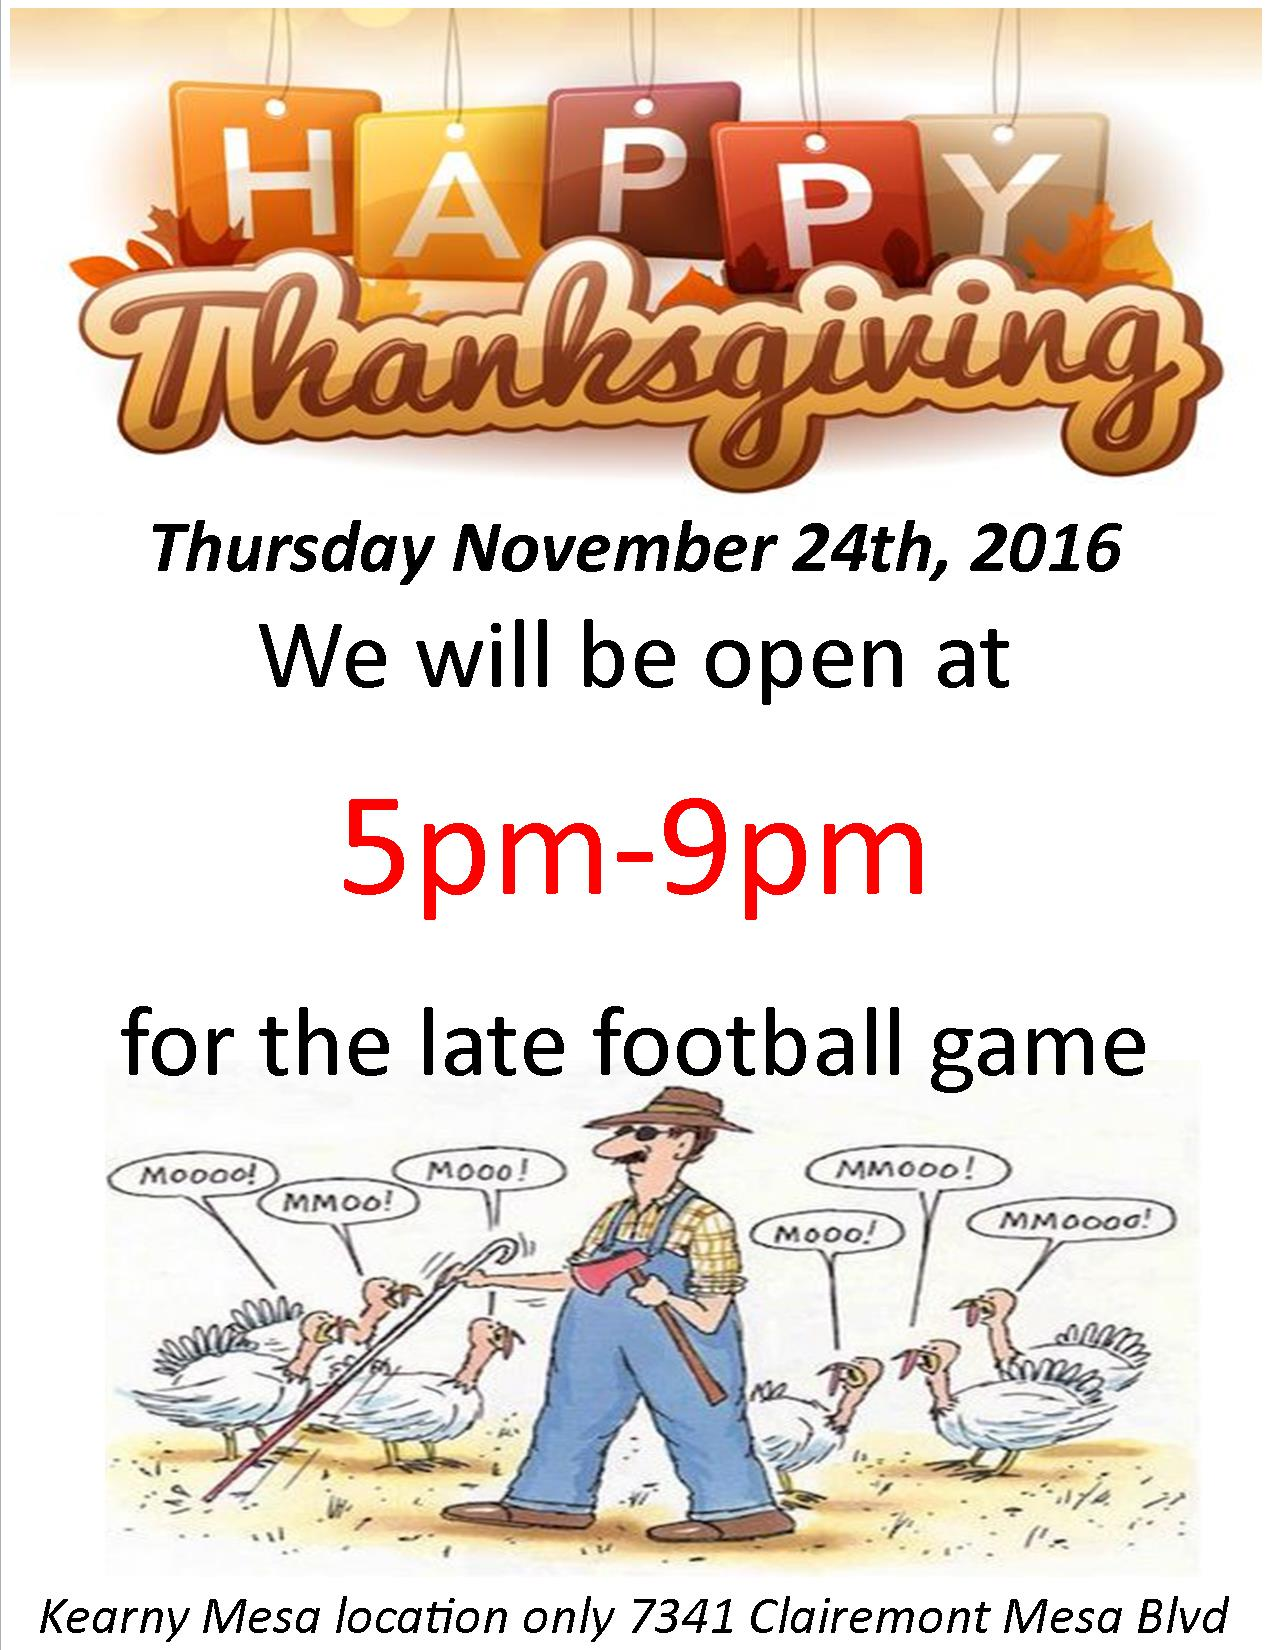 Liberty Tobacco will be open Thanksgiving at 5pm-9pm